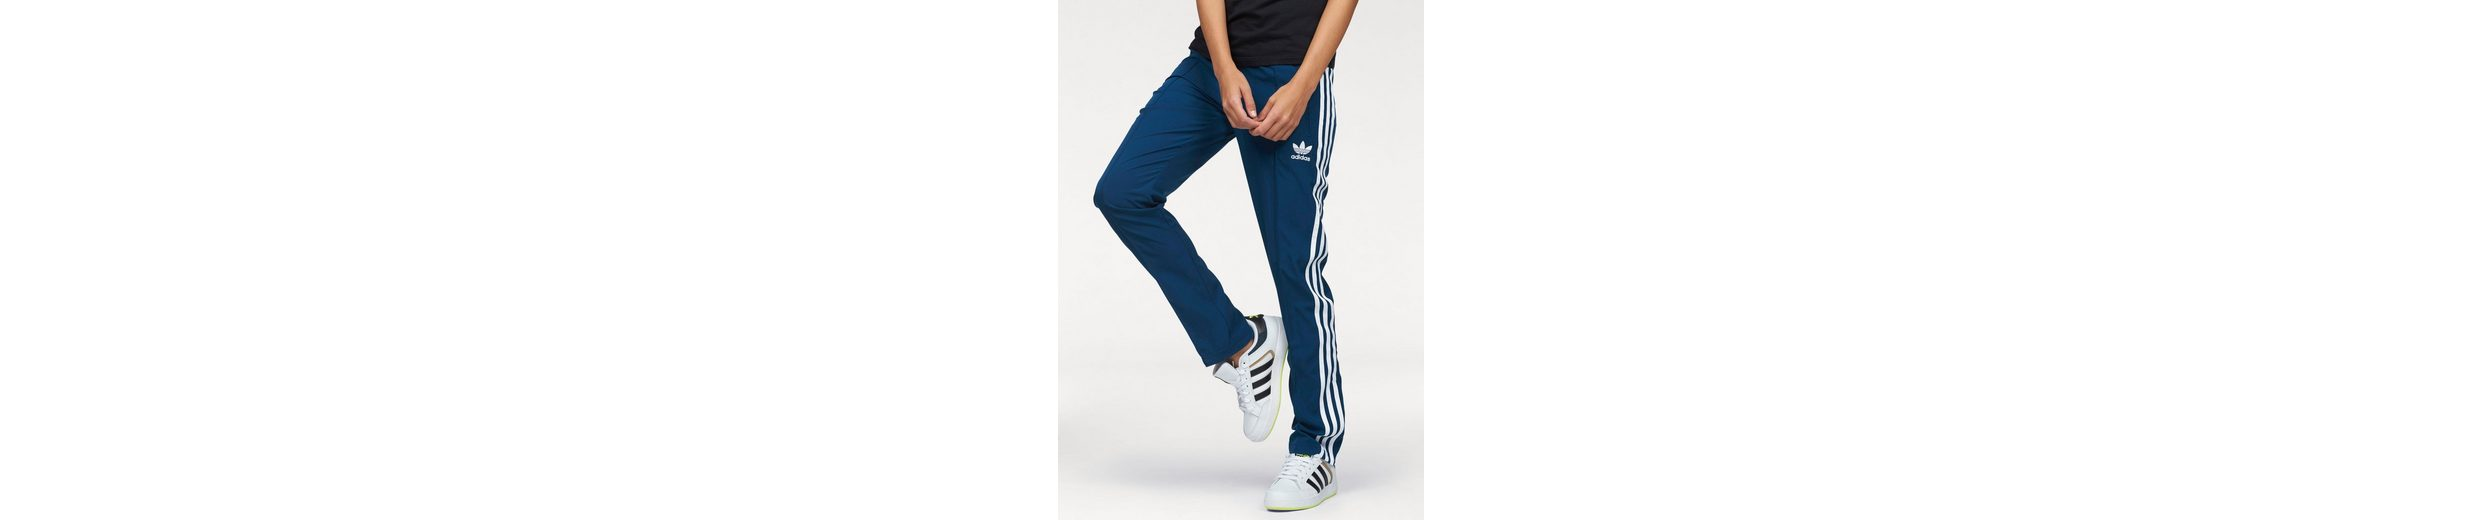 adidas Originals Trainingshose Einkaufen Outlet Online yGNaUqTe1A